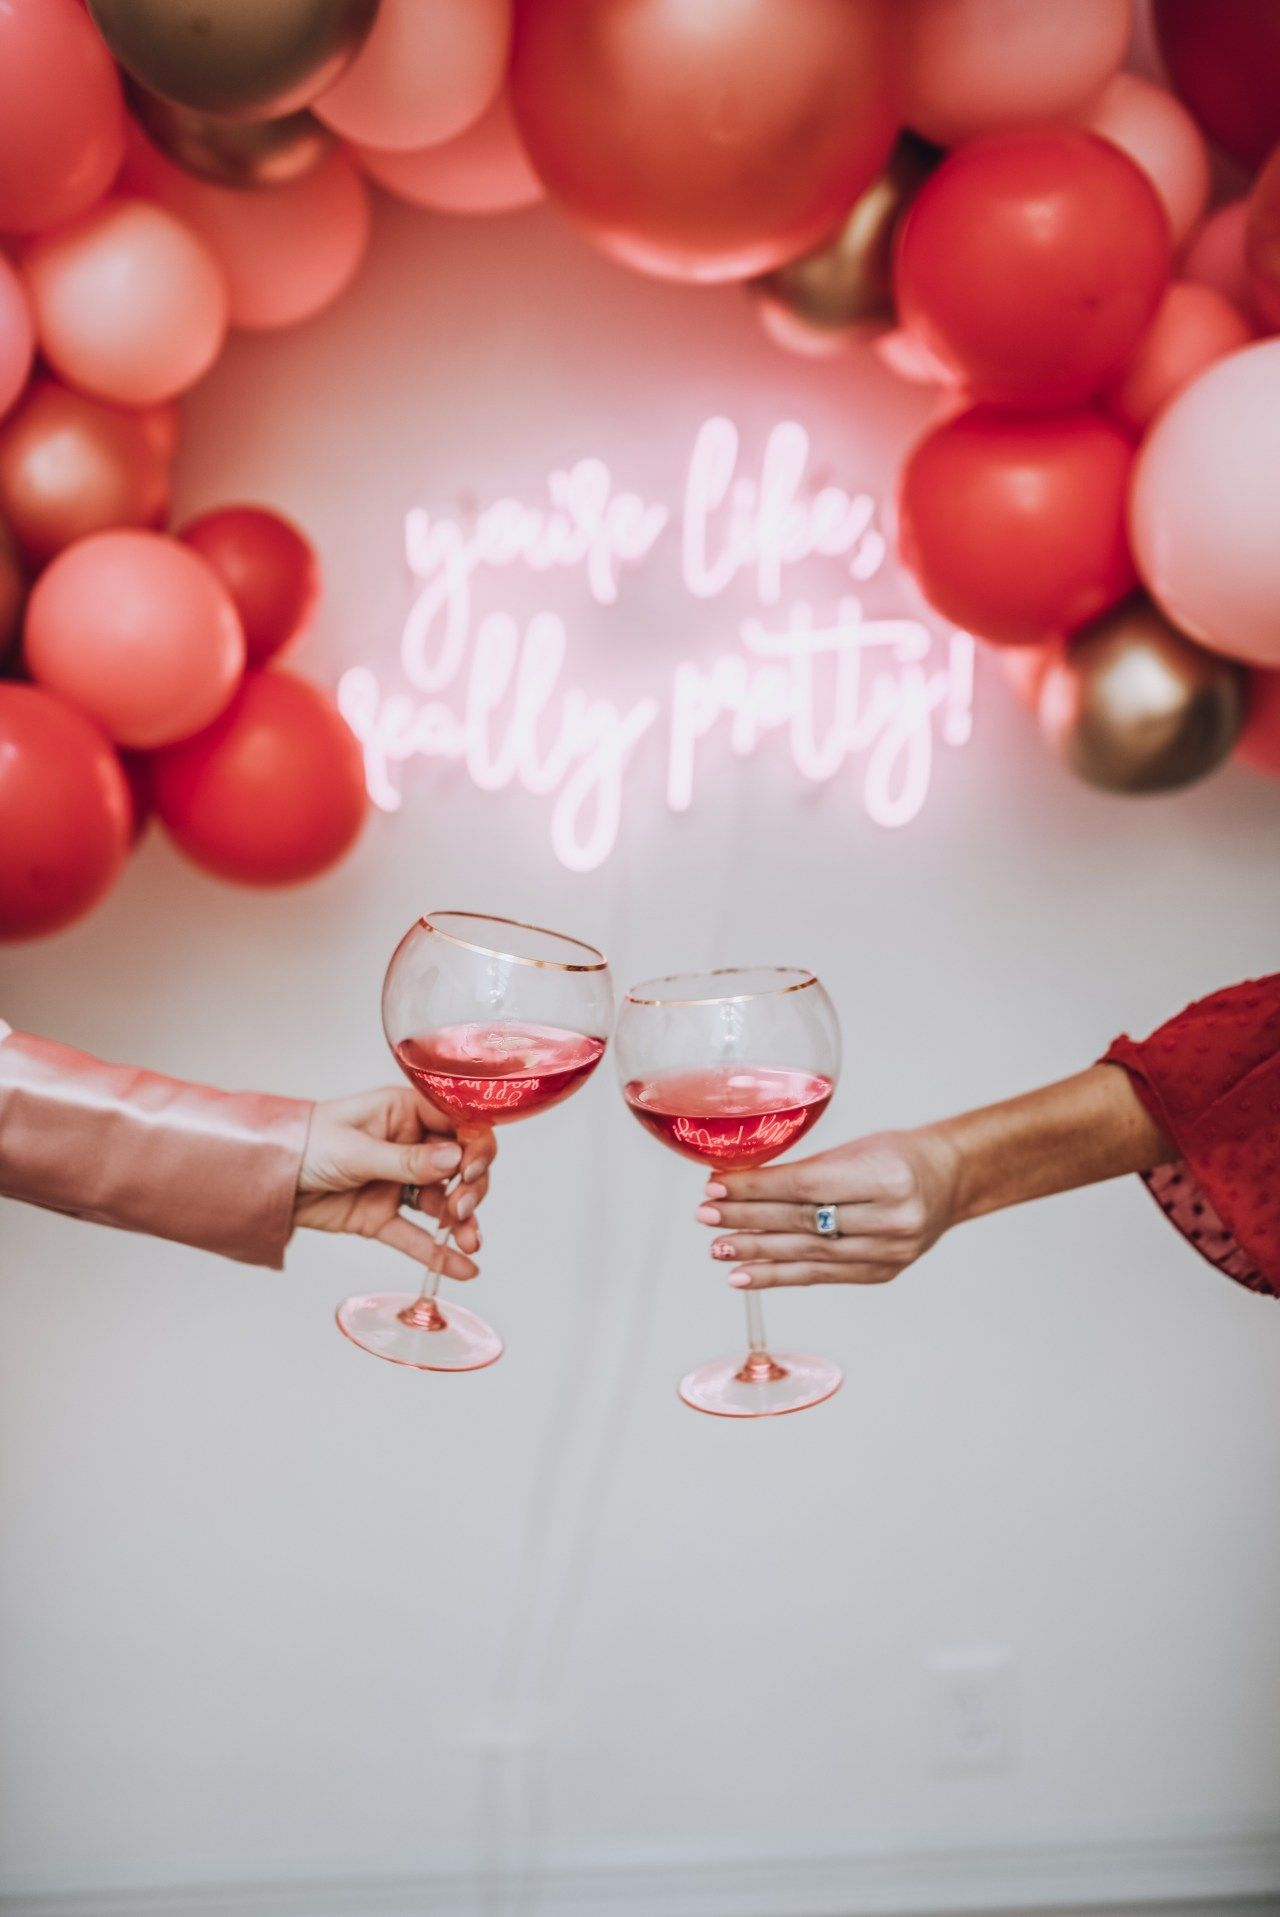 50 Instagram Captions For Wine Lovers It S All Chic To Me Houston Fashion Blogger Style Blog Wine Lovers Good Instagram Captions Instagram Party